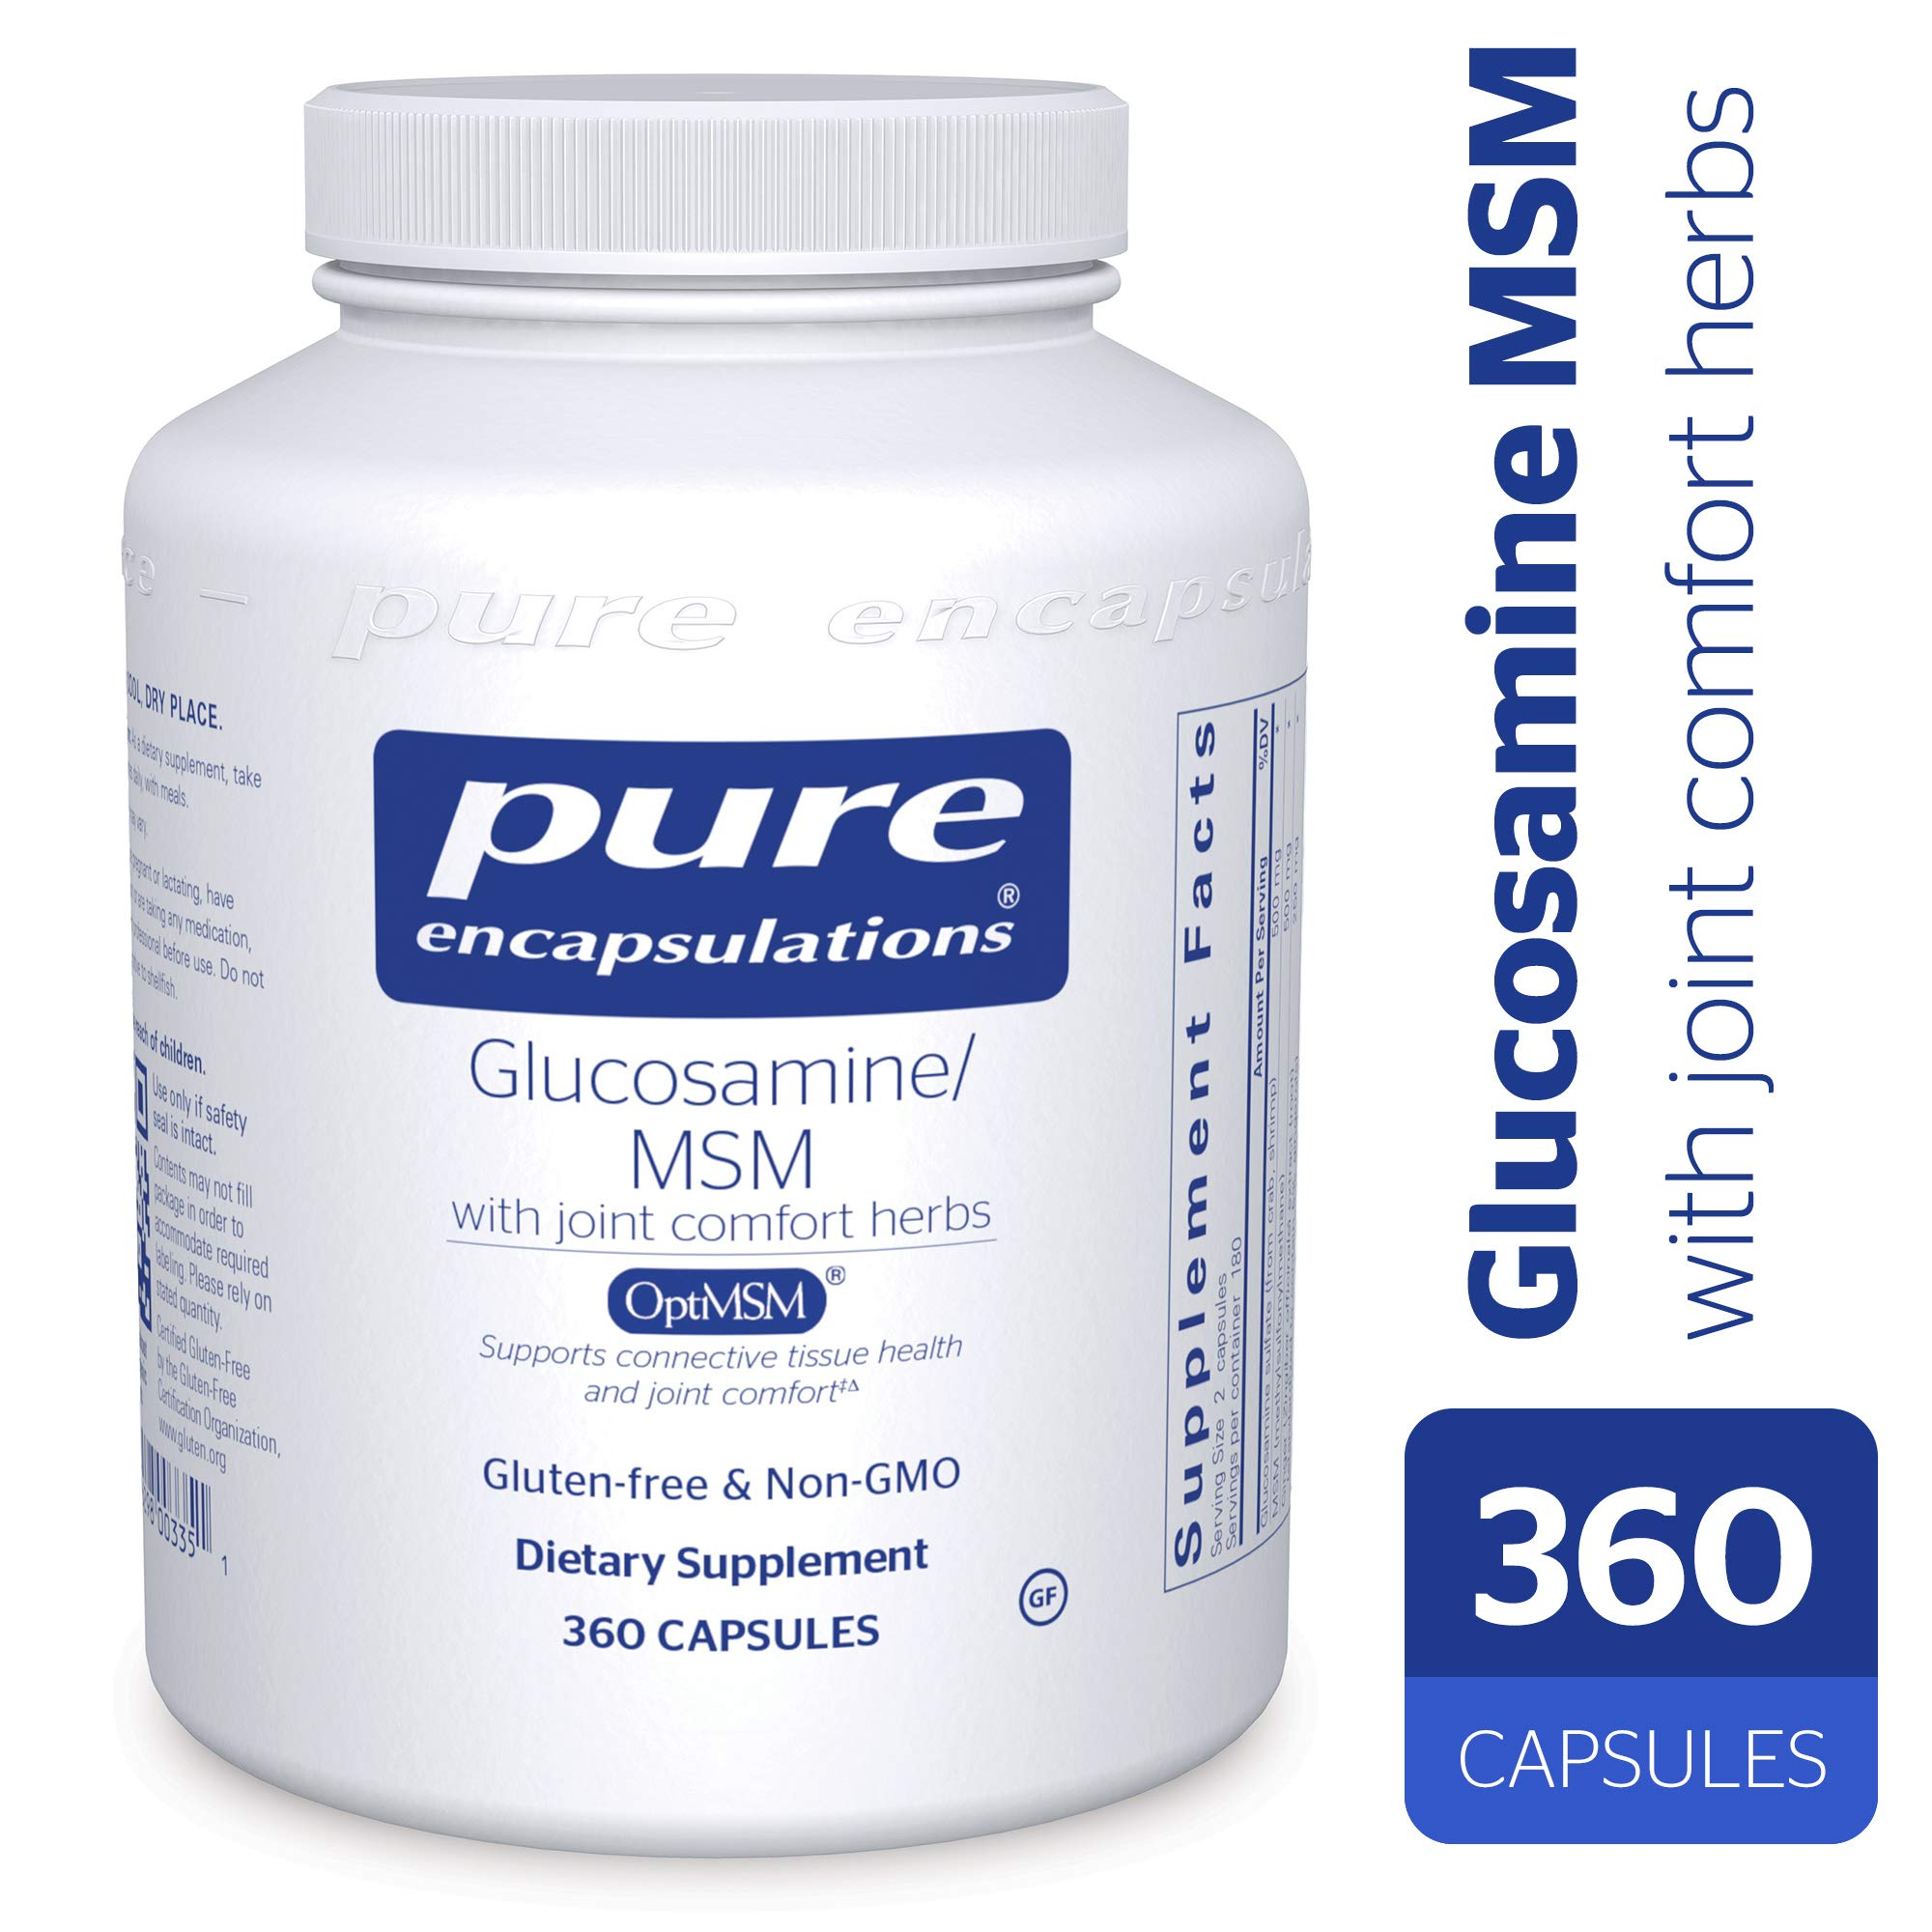 Pure Encapsulations - Glucosamine/MSM - Dietary Supplement Support for Healthy Joint Function and Tissues* - 360 Capsules